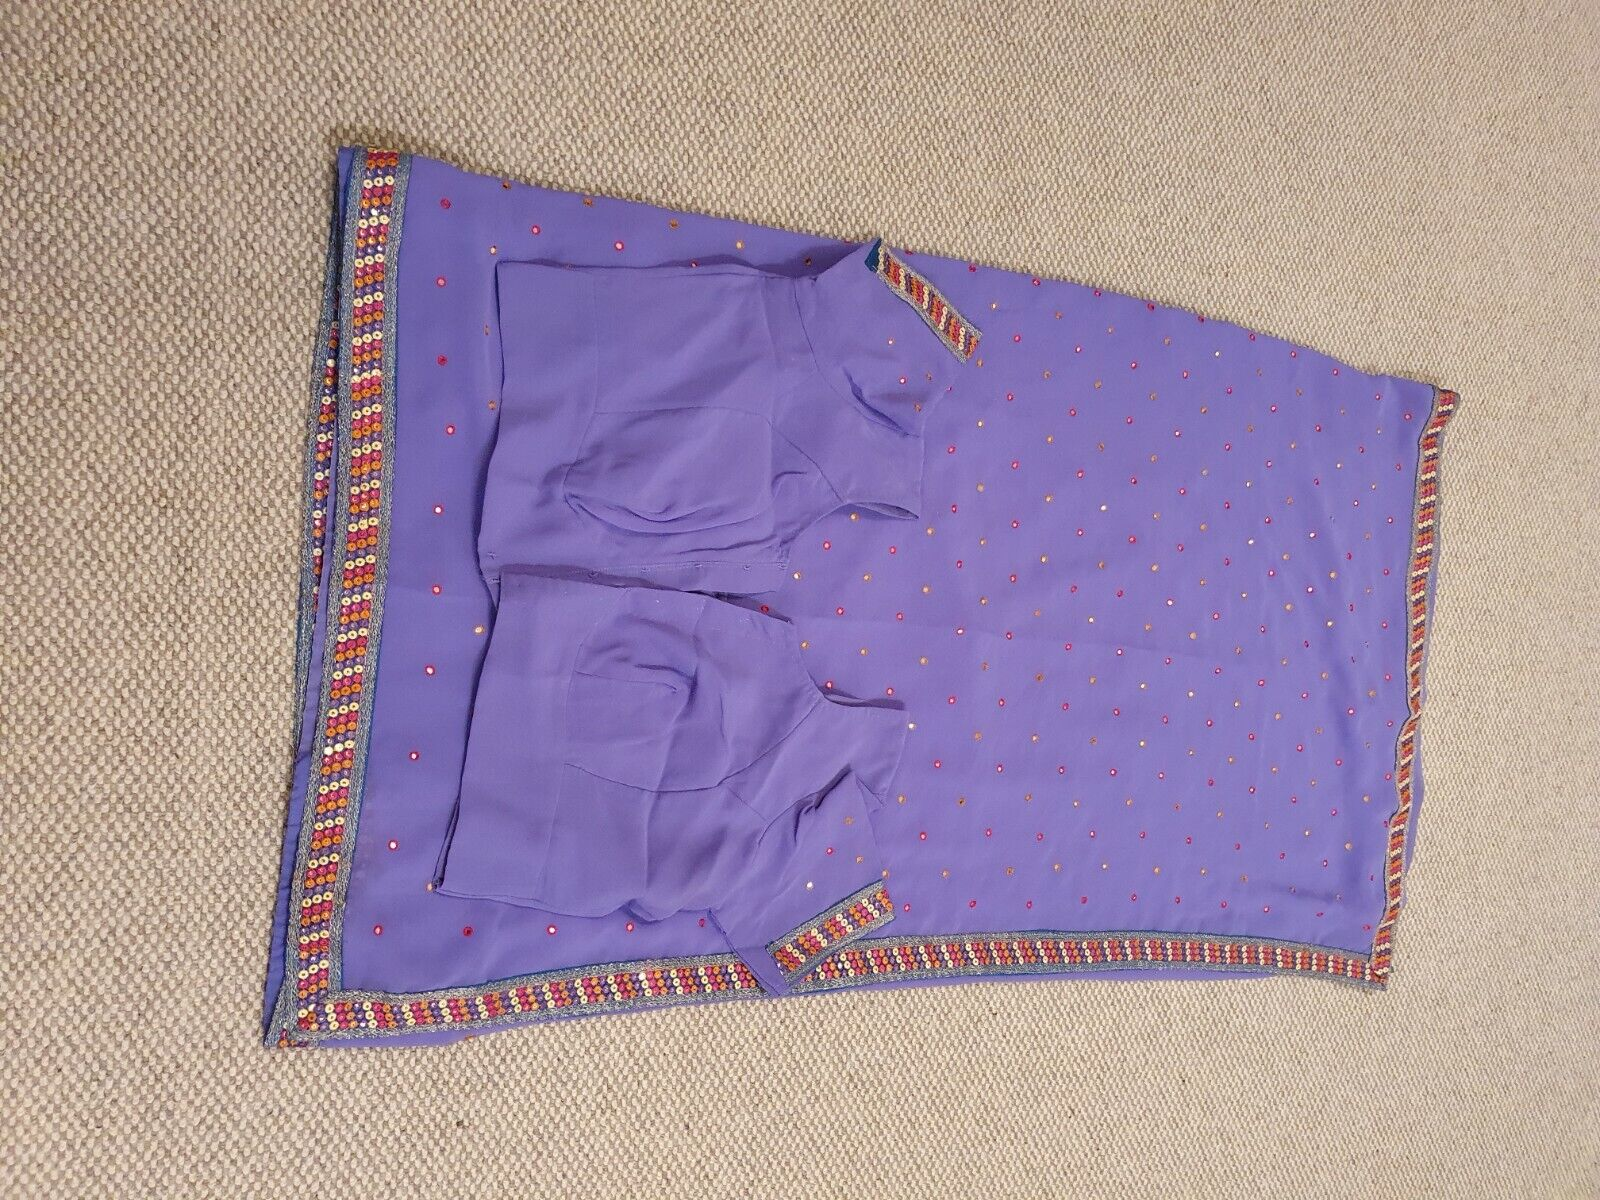 embroided saree in light purple with multi coloured stitching